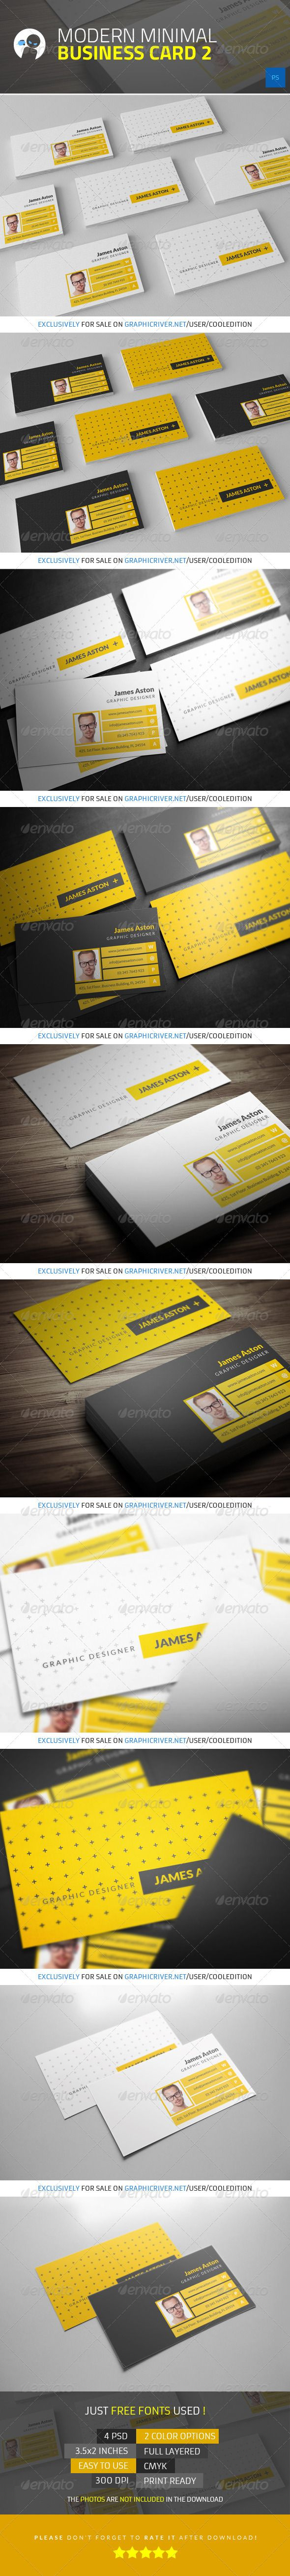 44 best taste business card inspiration images on pinterest